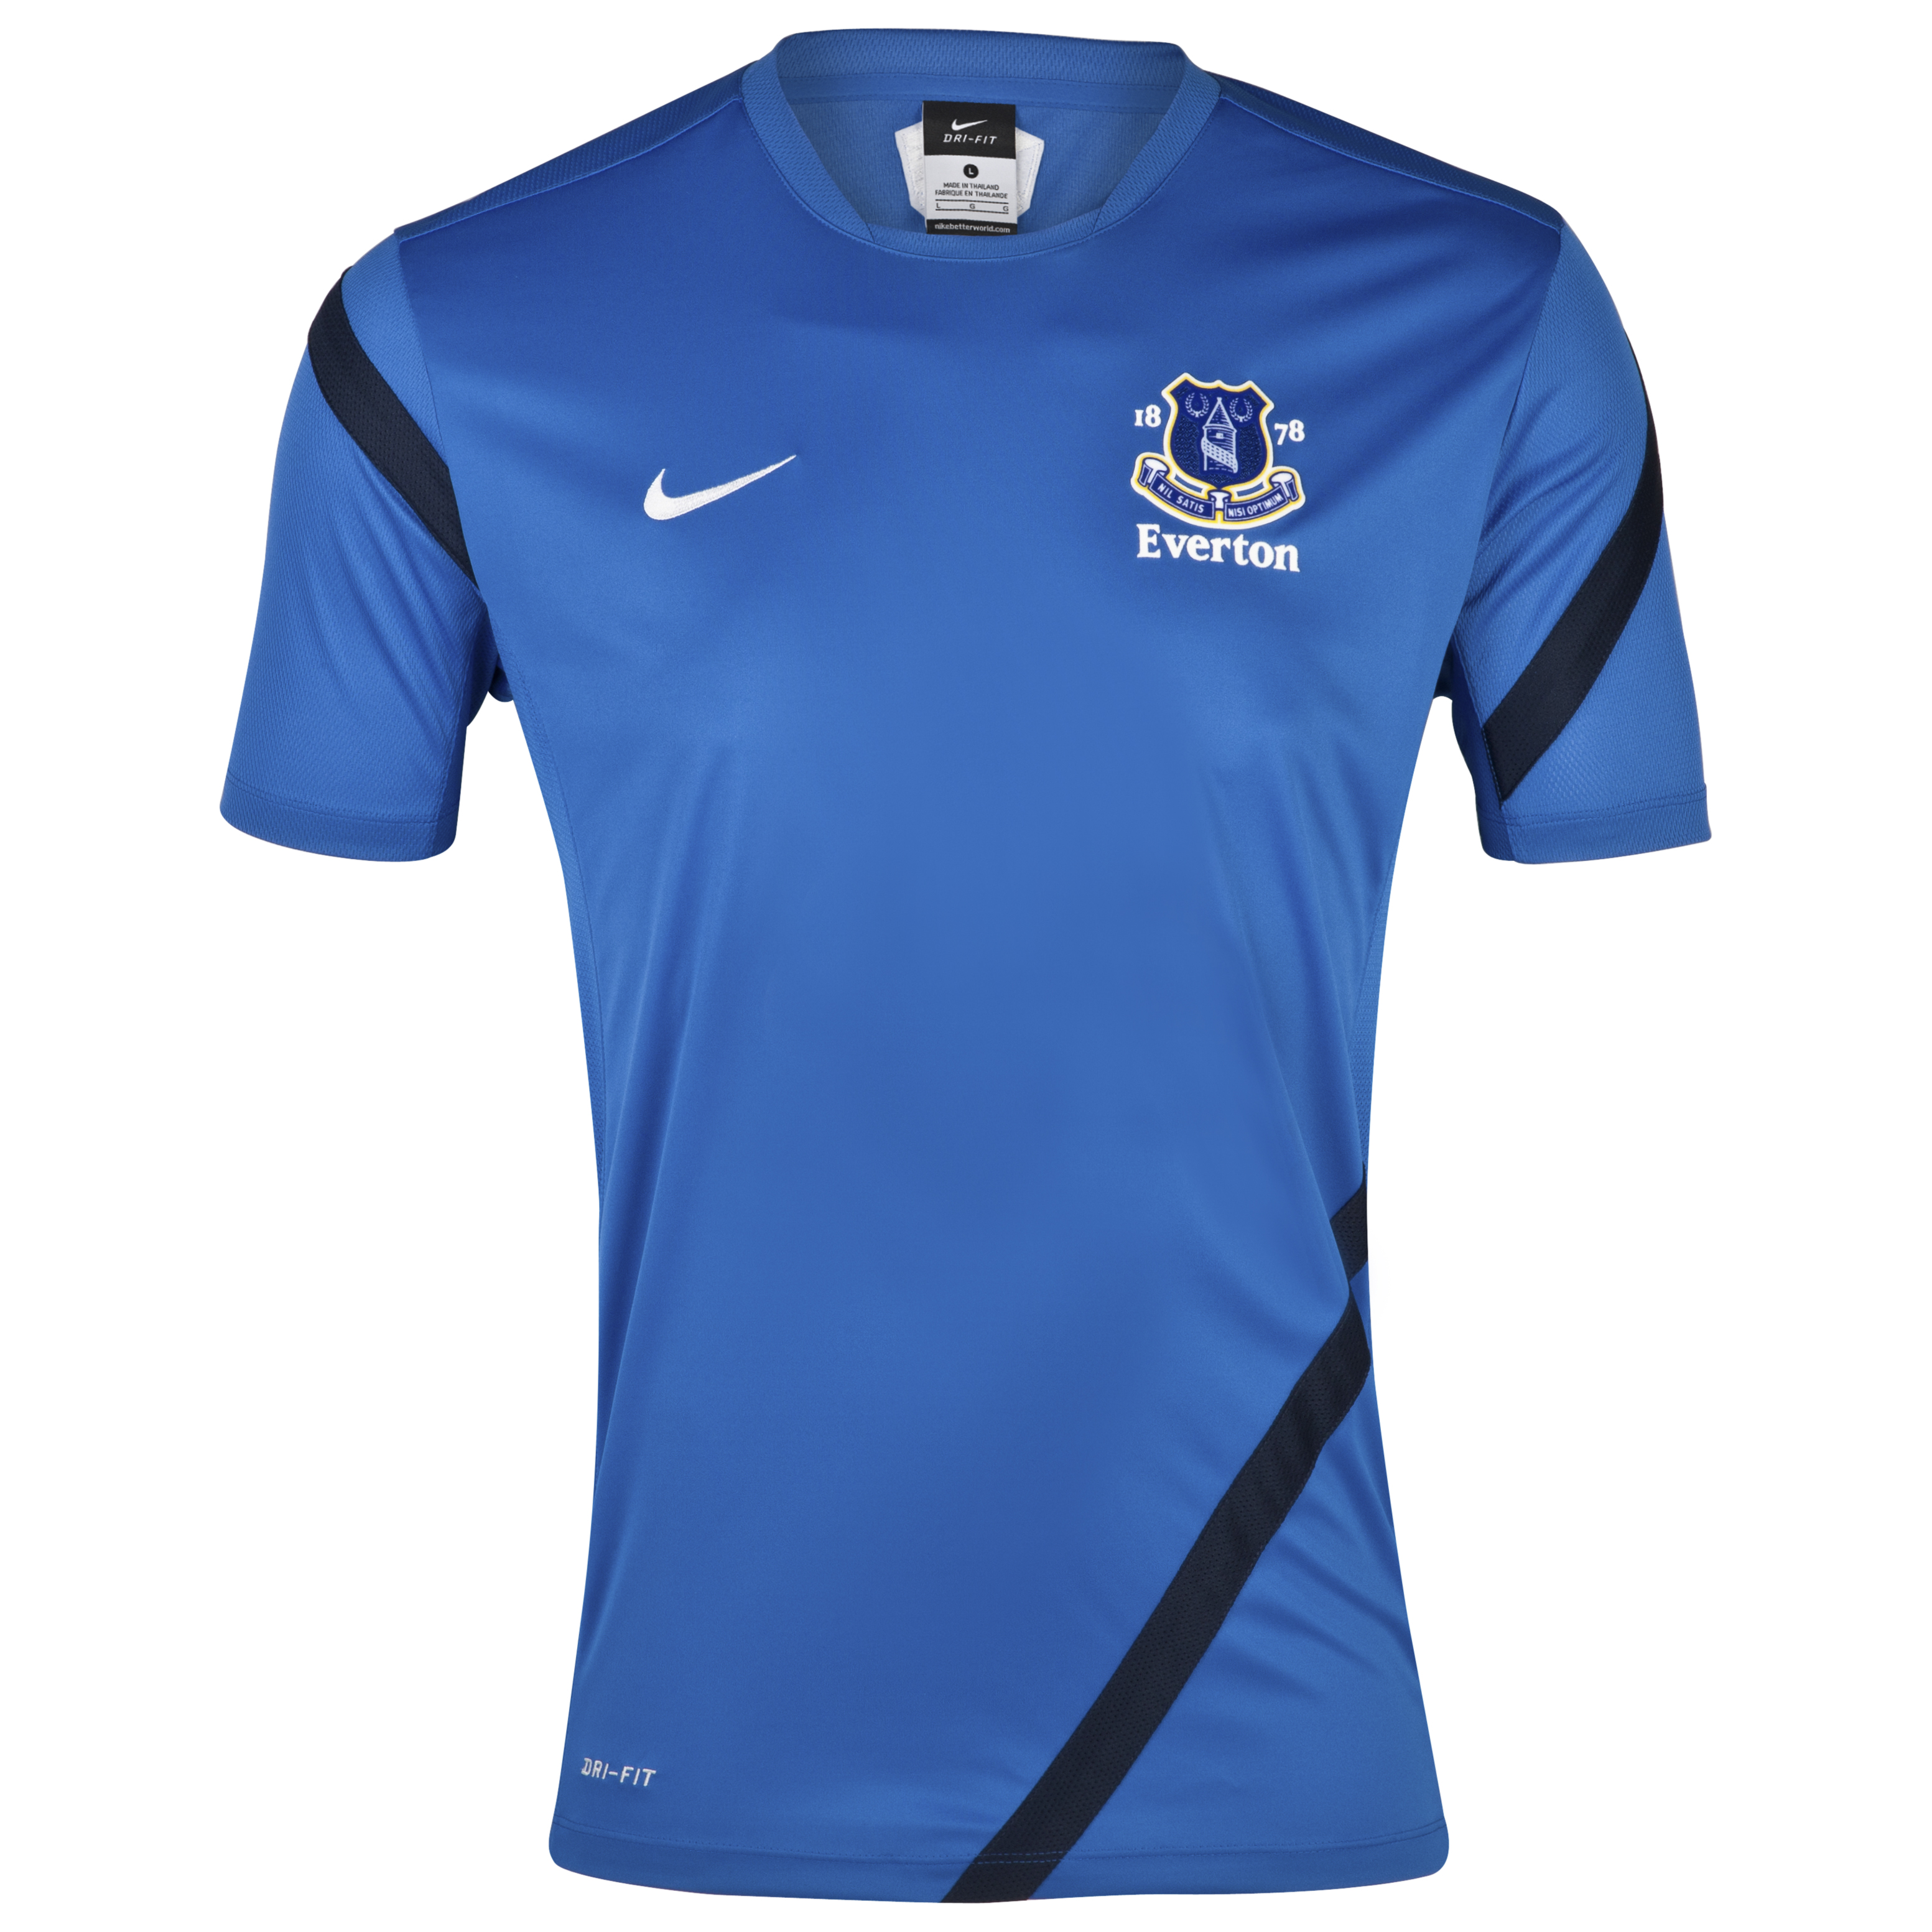 Everton Training T-Shirt - Junior - Royal Blue/Obsidian/White